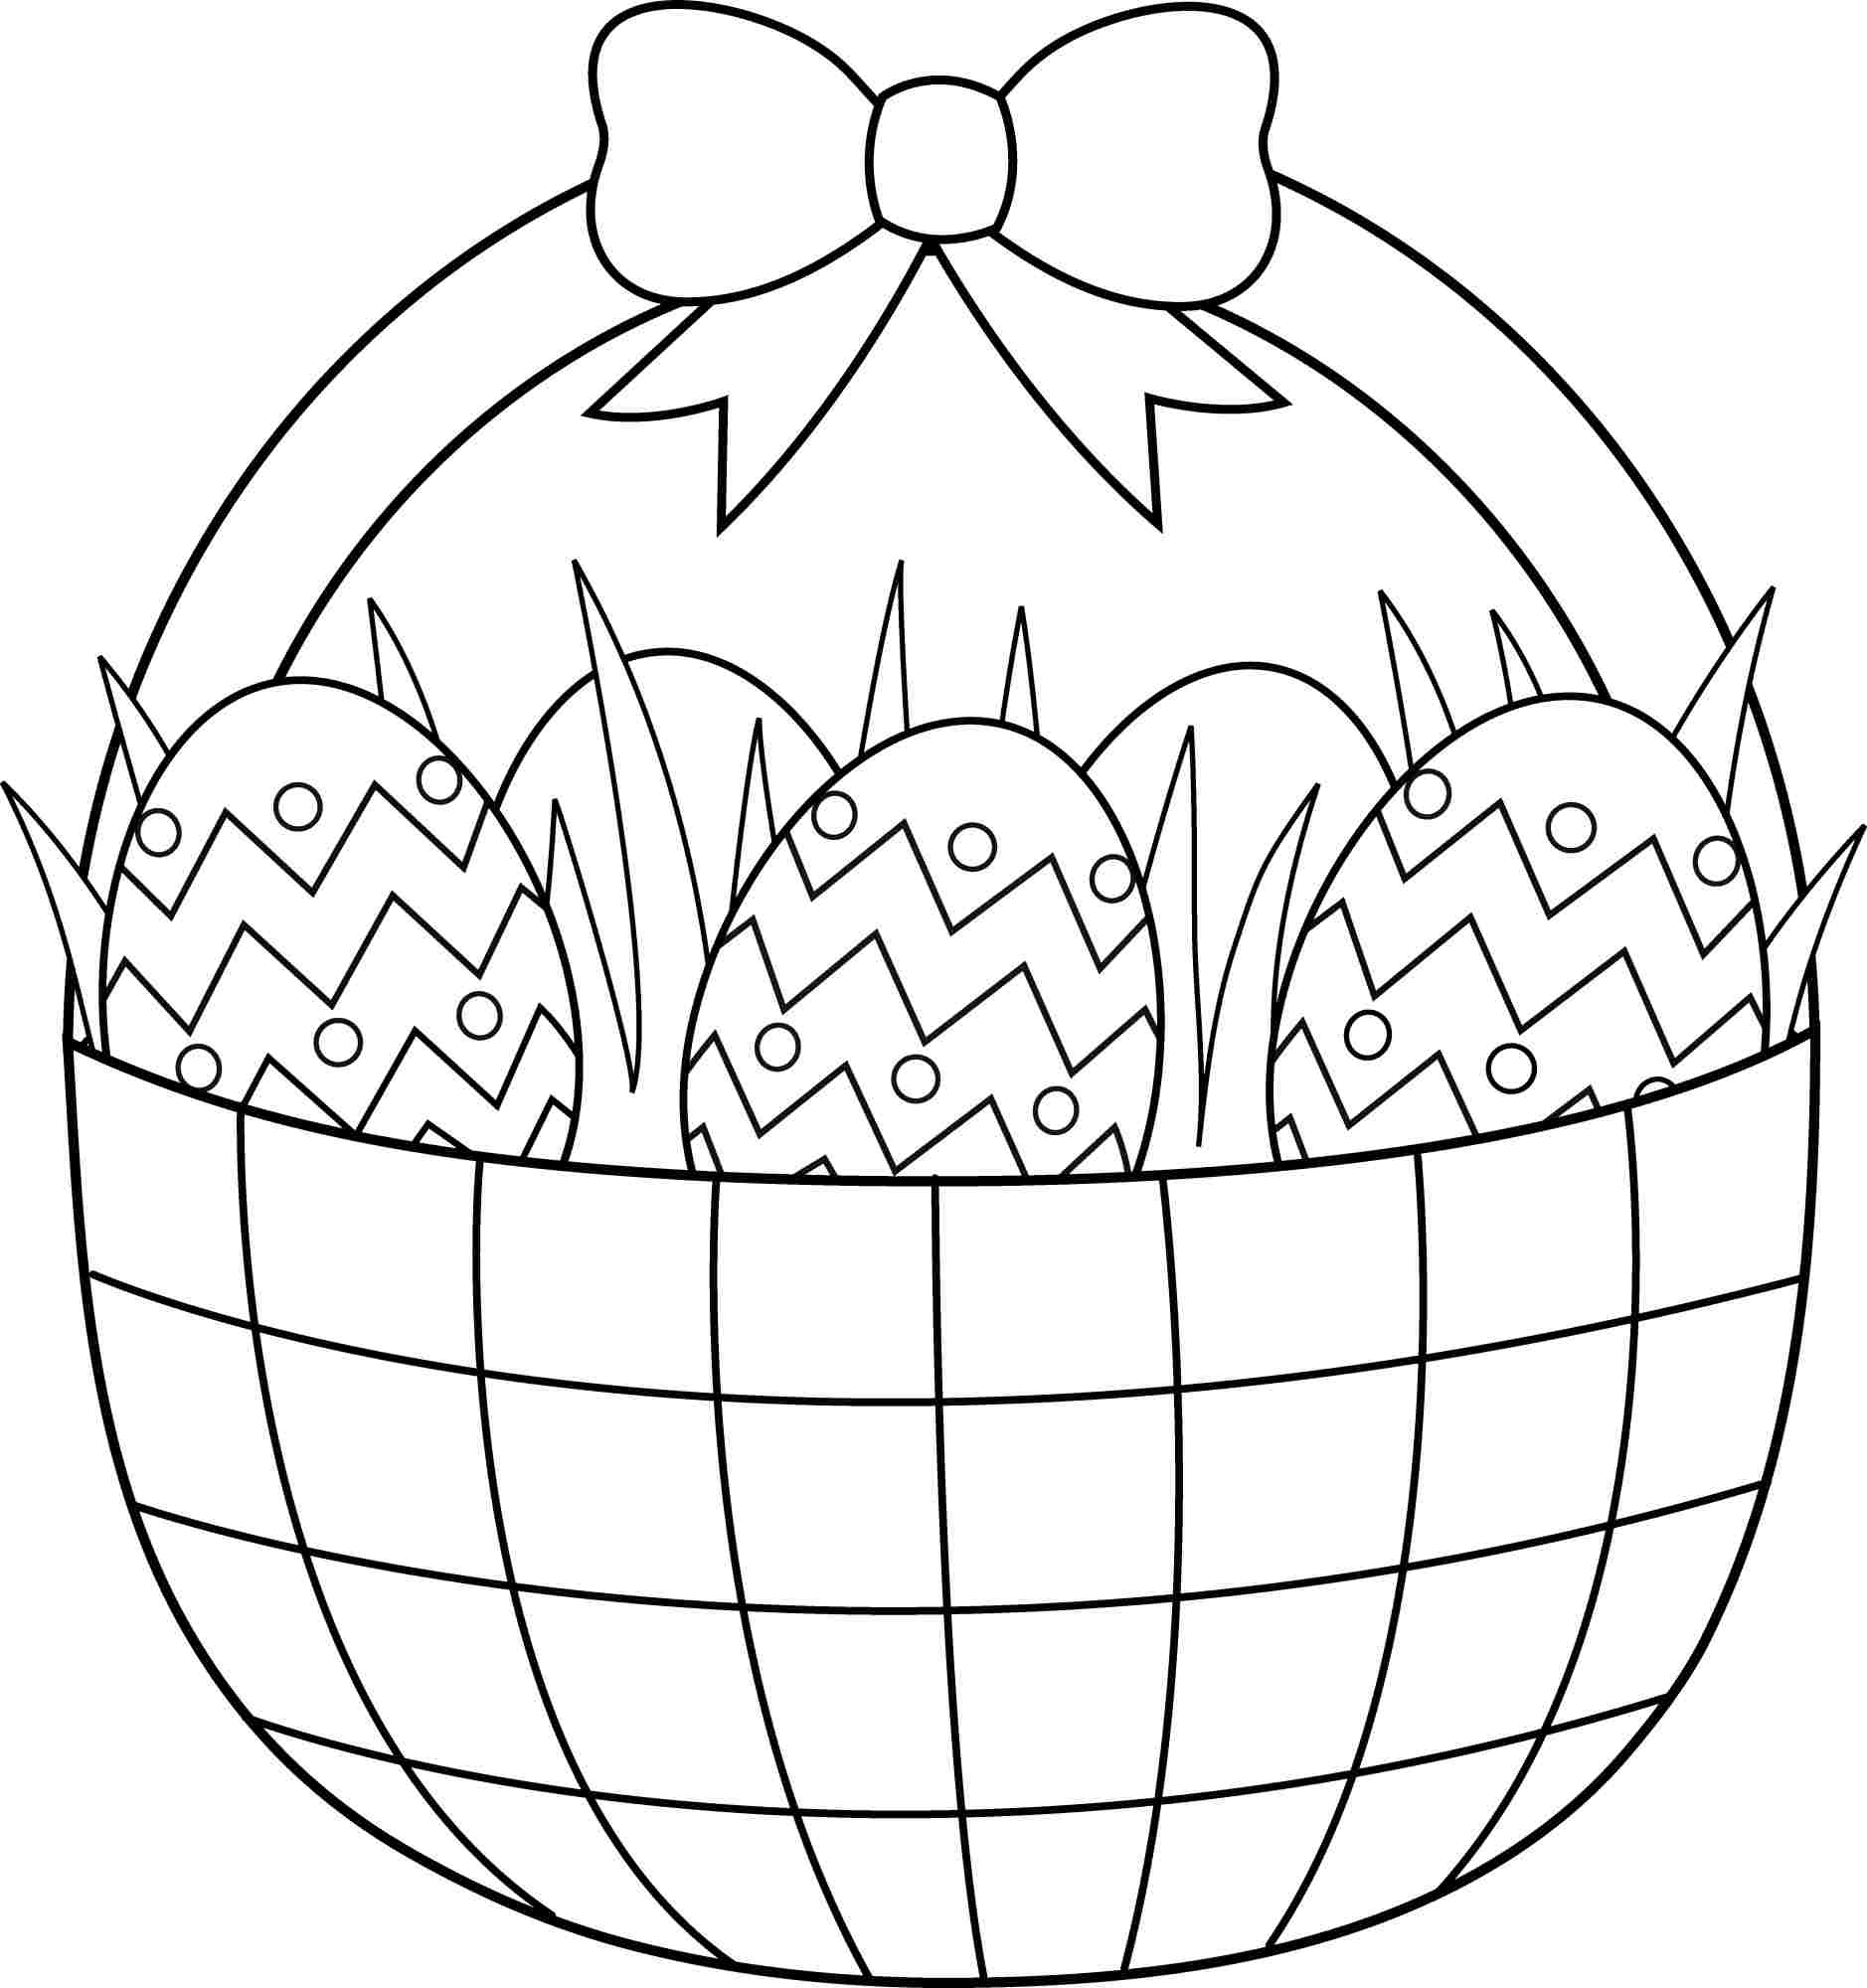 Coloring Pages : Coloring Pages Printable Easter Photo Ideas Drawing - Free Easter Color Pages Printable